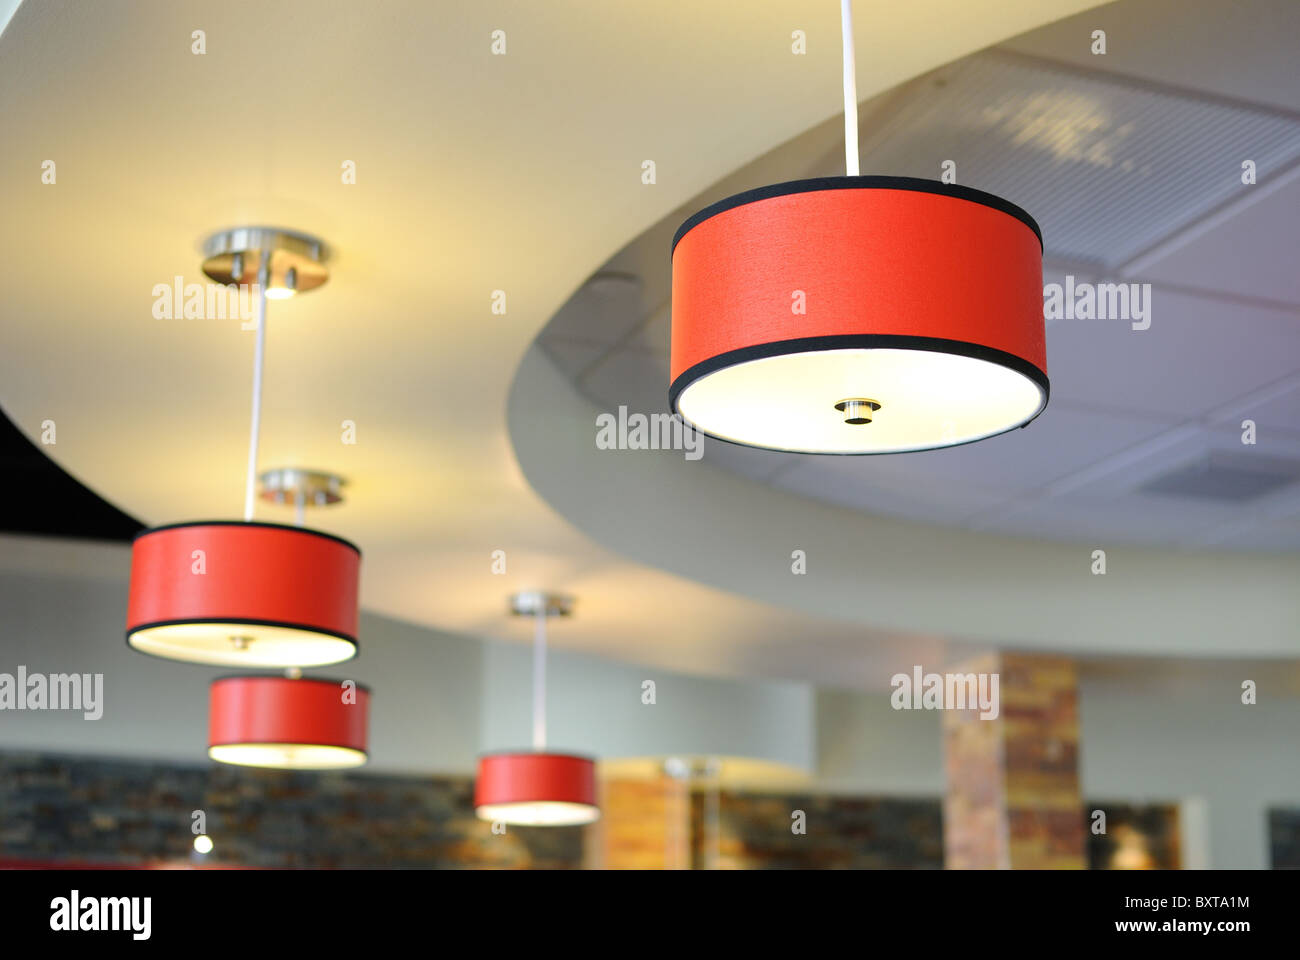 Arrangement of hanging lighting fixtures stock image